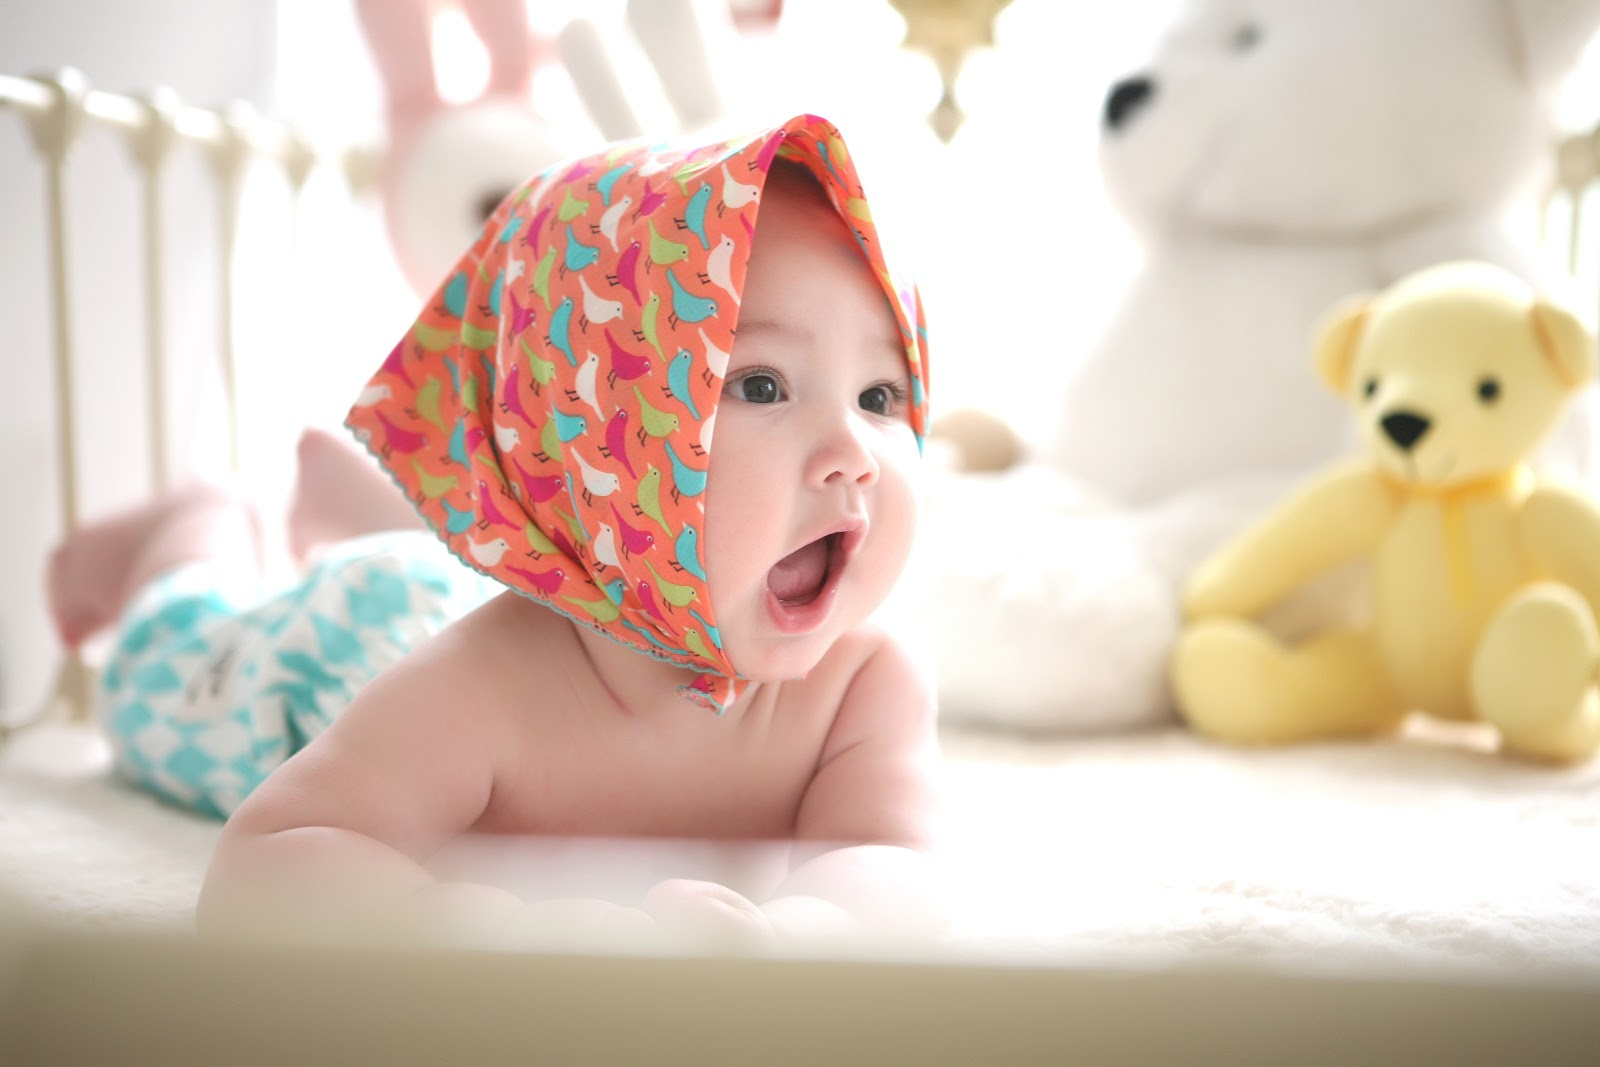 Adorable Baby Images HD Photography Wallpapers